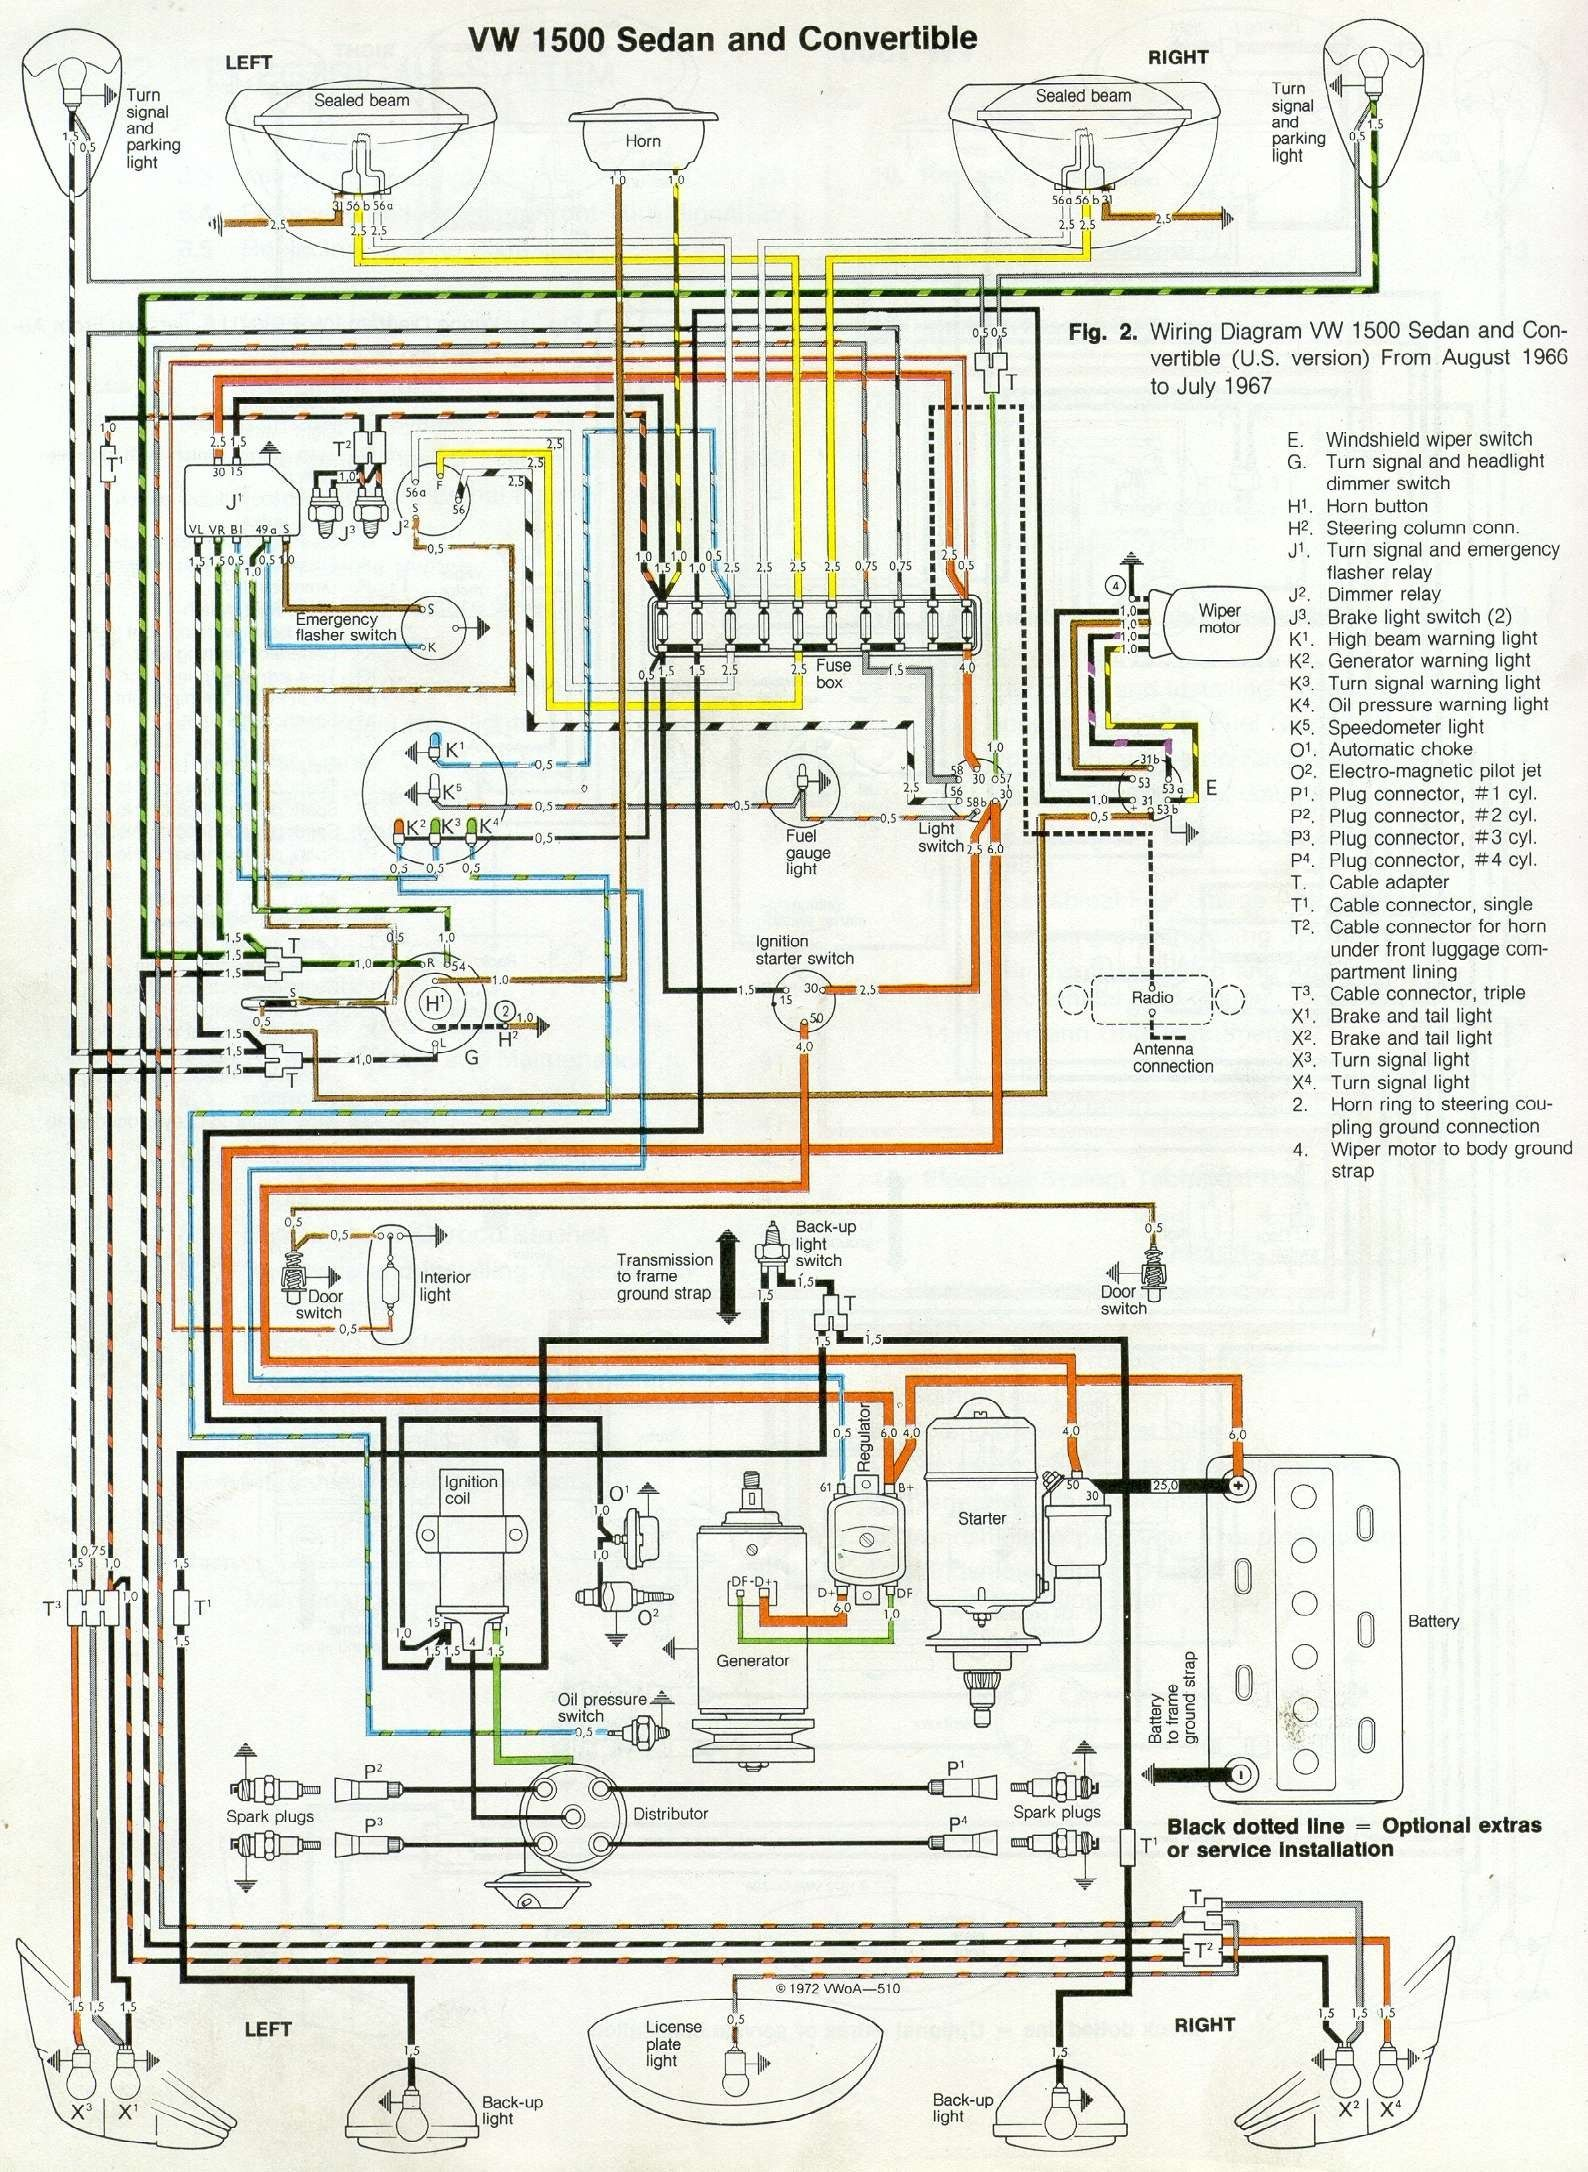 Vw Trike Wiring Harness Automotive Diagram. 66 And 67 Vw Beetle Wiring Diagram Volkswagen Pinterest Rh Harness Trike Kit. Volkswagen. Vw Bug Wiring Harness Kit At Scoala.co